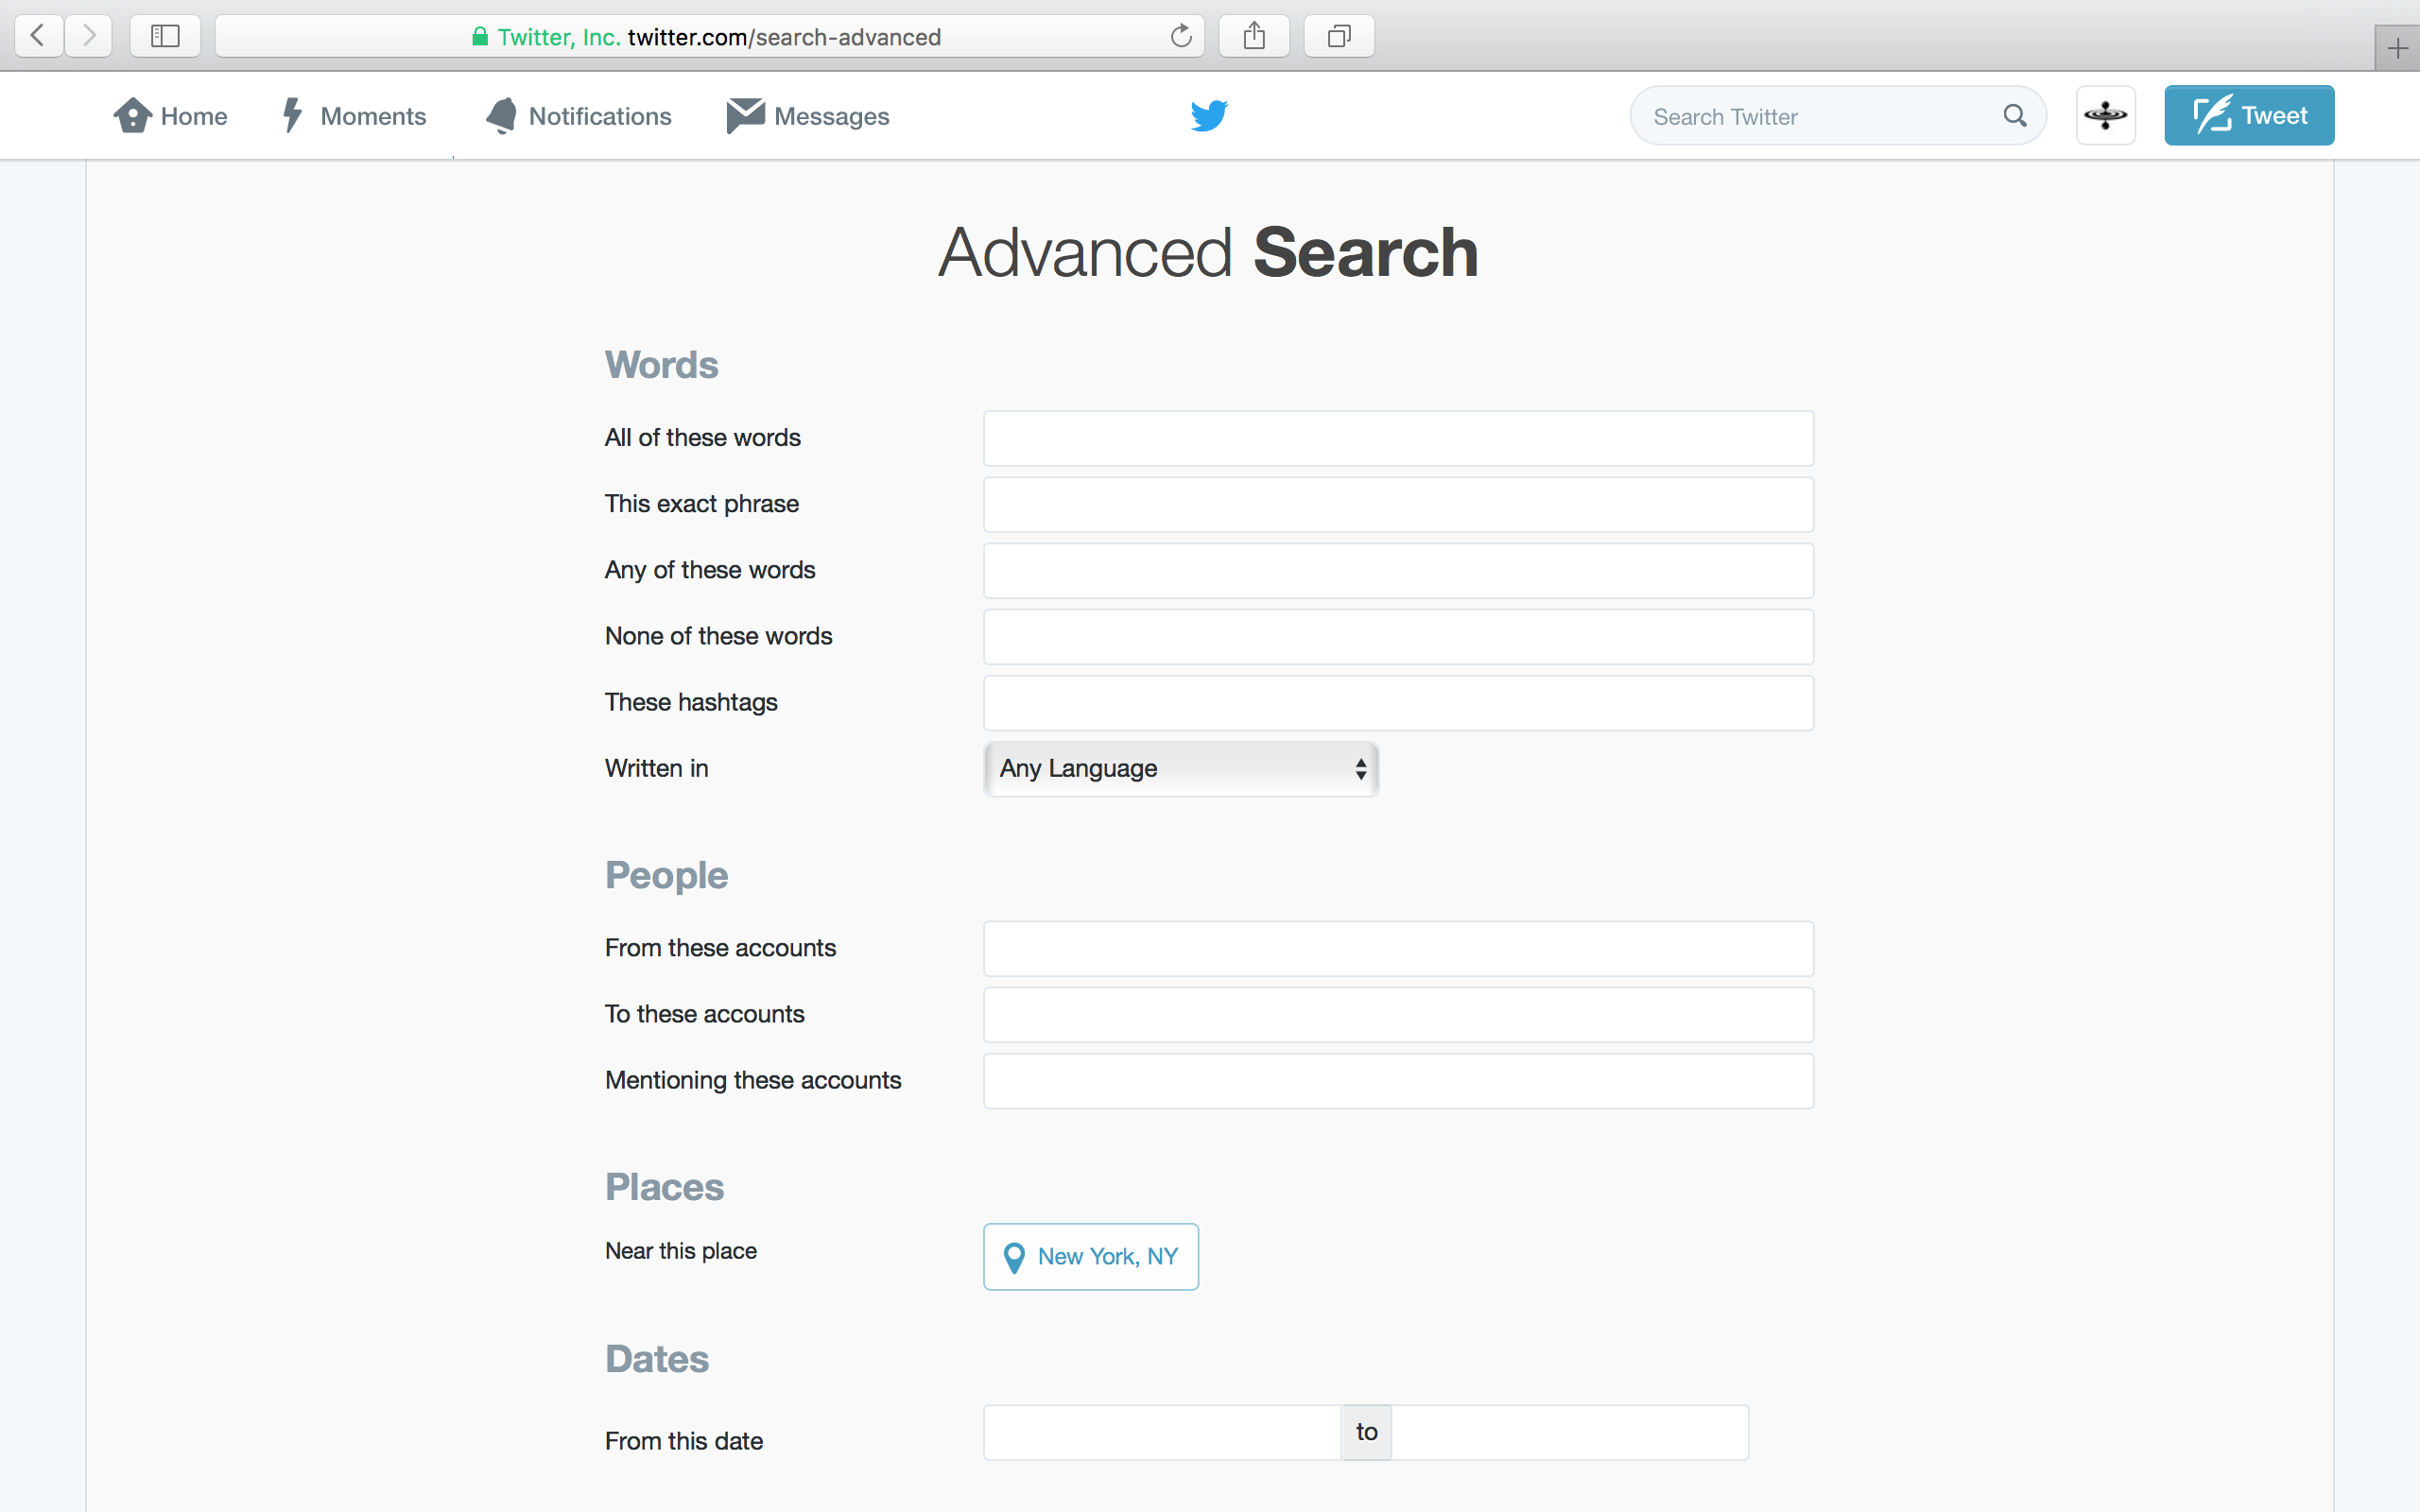 Advanced Search Fields